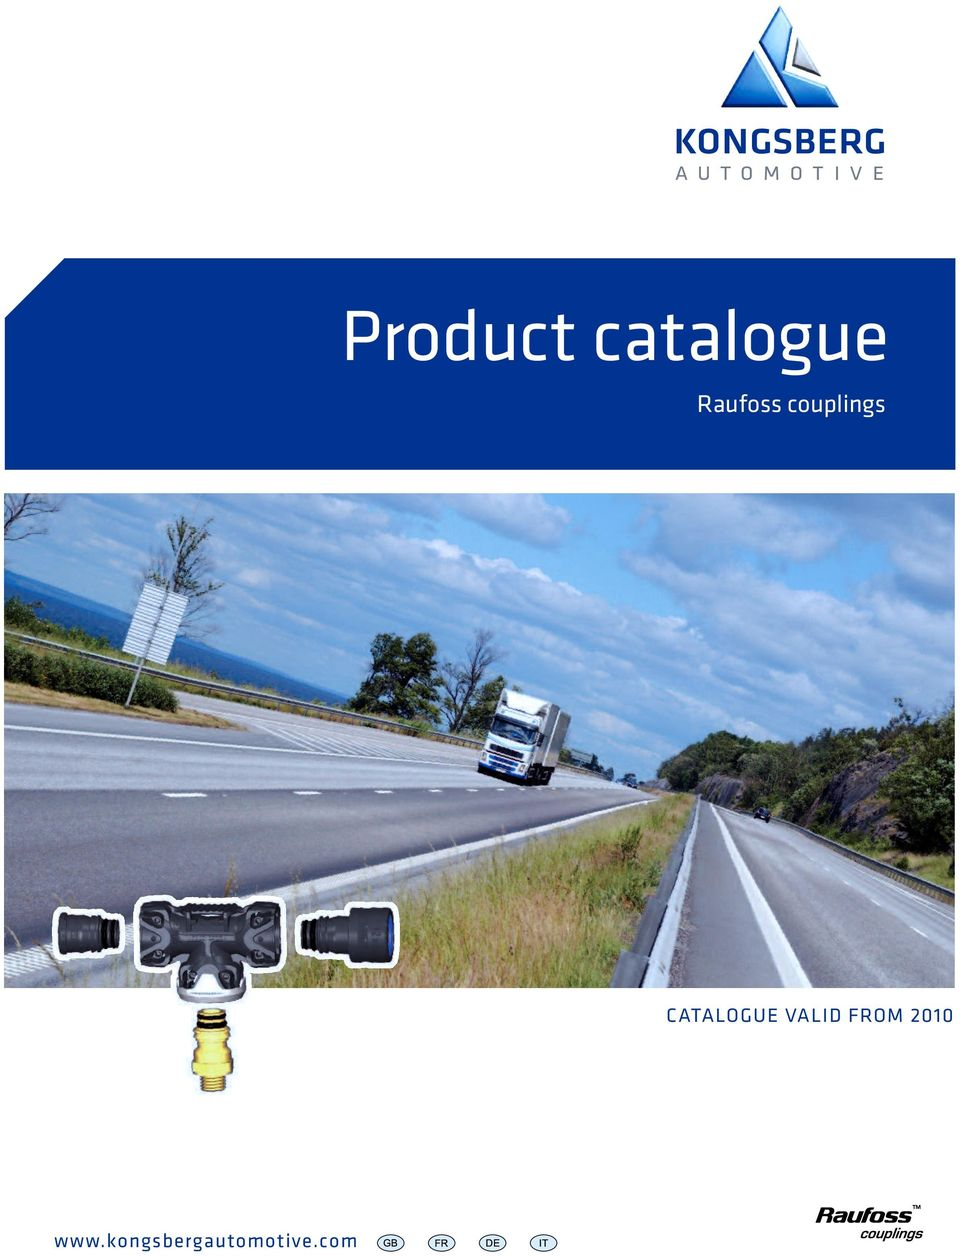 CATALOGUE VALI FROM